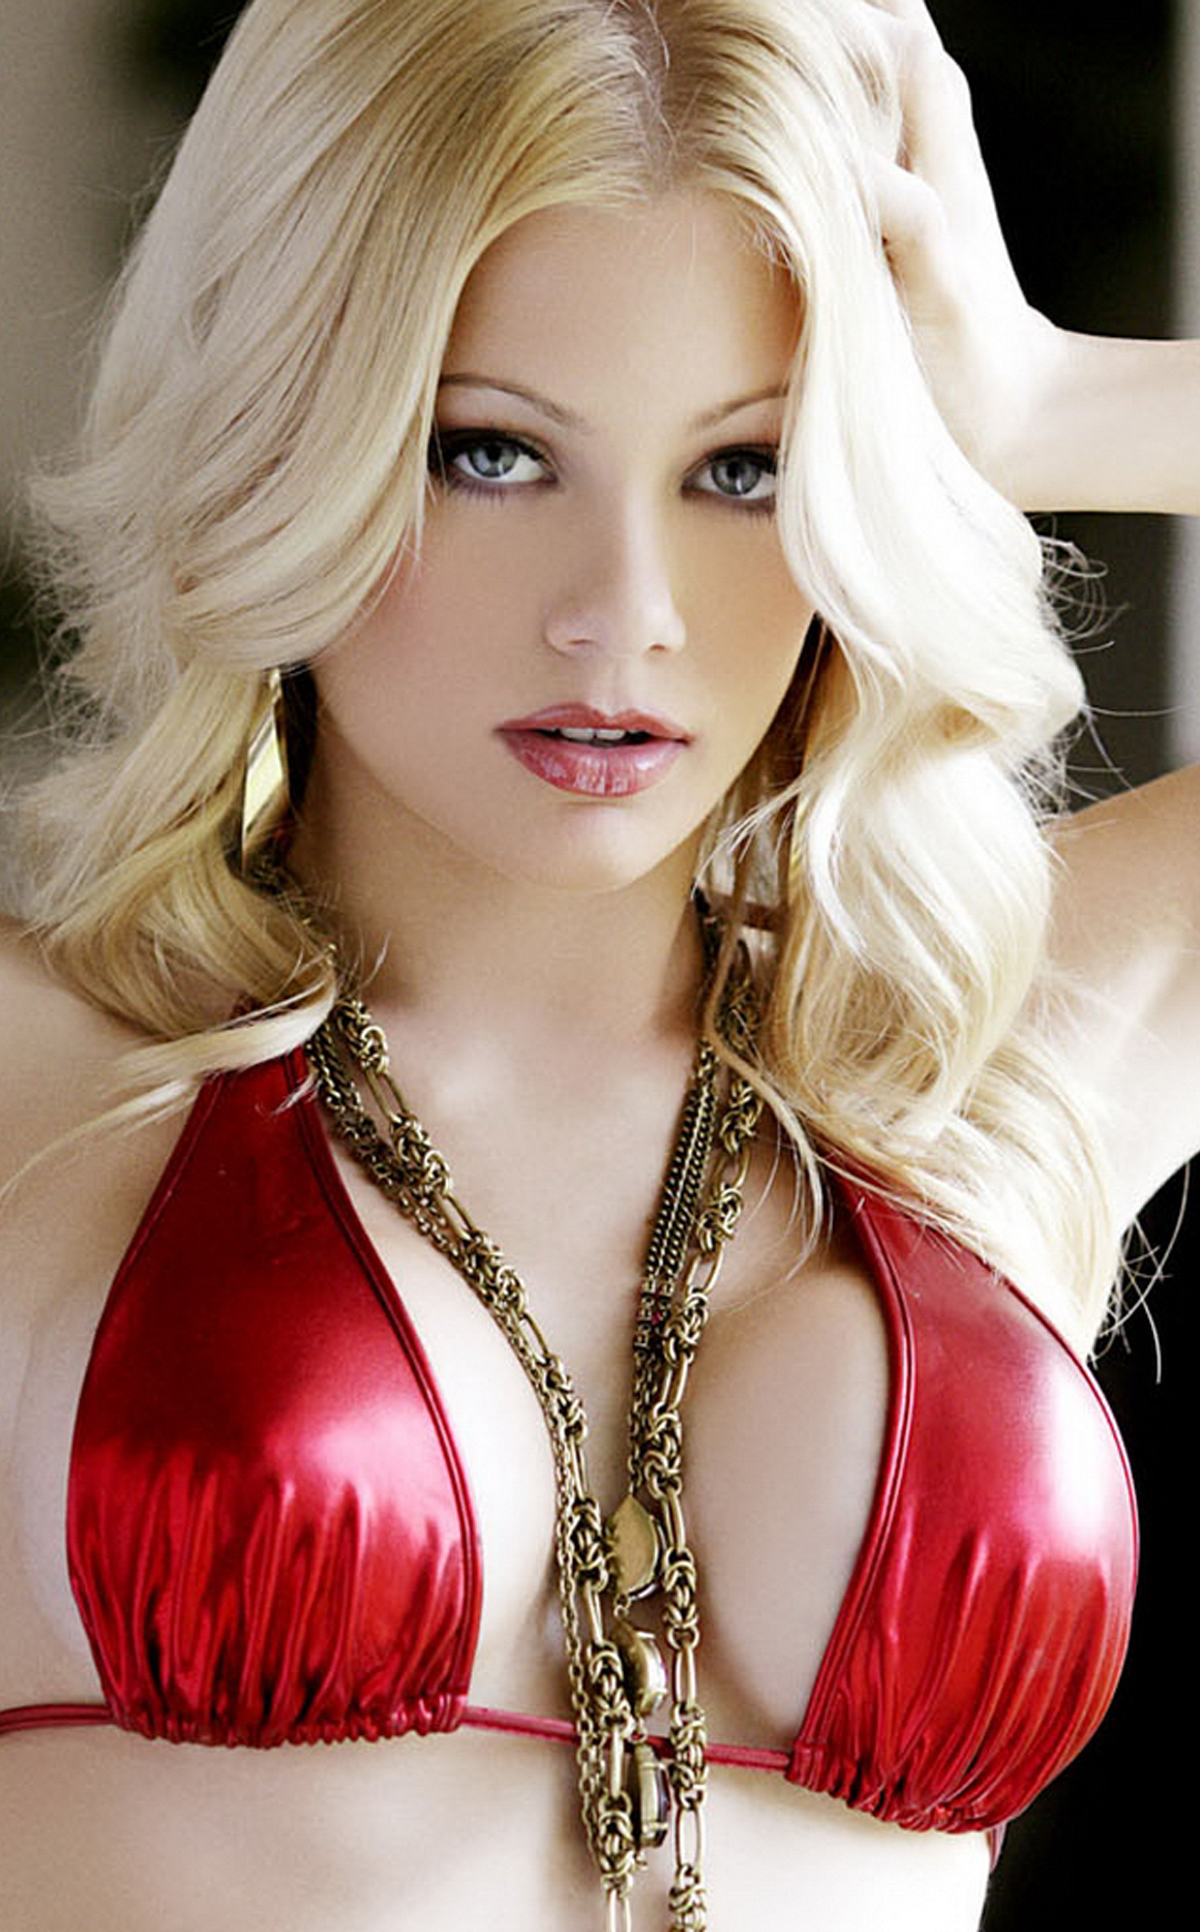 Riley Steele HD Iphone